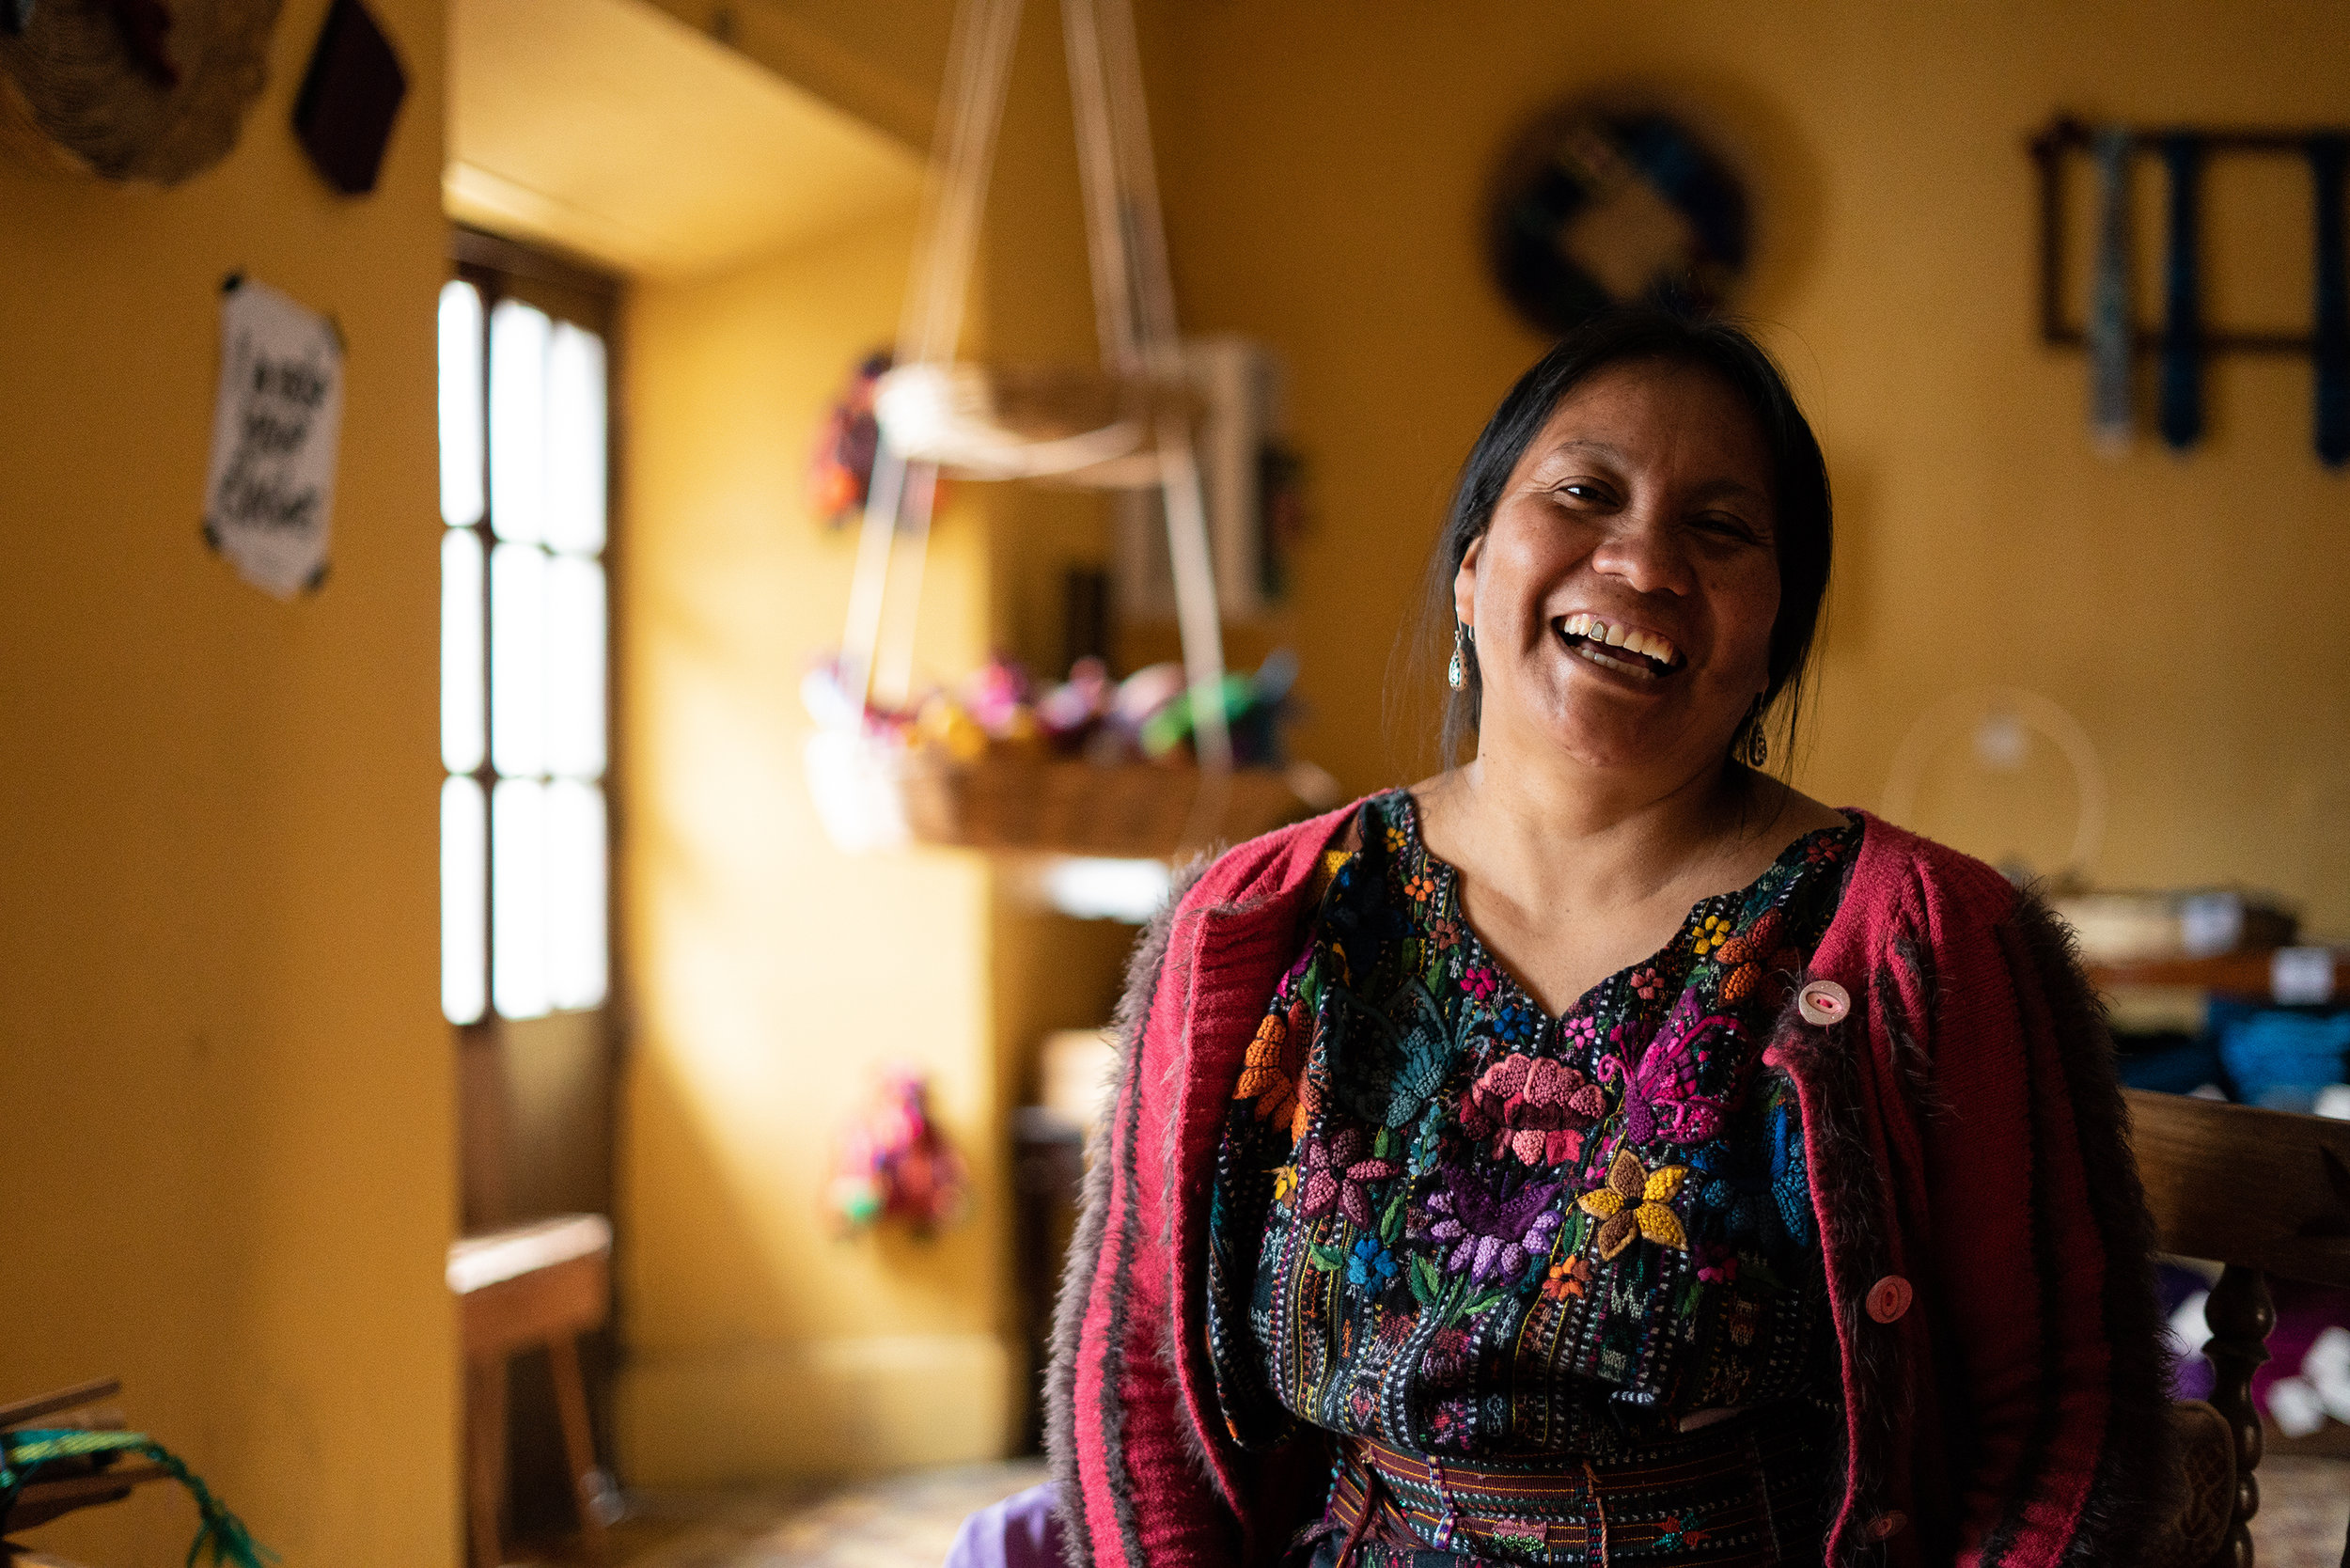 Lead Weaver: Oralia - Working alongside fellow Mayan women as part of a local artisan association in Solola, Guatemala, Oralia had learnt the art of looming from her own grandmother.Oralia shared with us that she works from her home, and always begins her weave with a prayer. As she takes care of her children during the day, Oralia often weaves throughout the night.She hopes to one day send her children to college.Oralia loves weaving because she believes that this is the mission her ancestors have given her. It is a cultural heritage, an art and they have to fight to preserve it.Her incredible weaving techniques and teachings had helped produced some of the intricate SOLOLA Shawls featured on our marketplace.